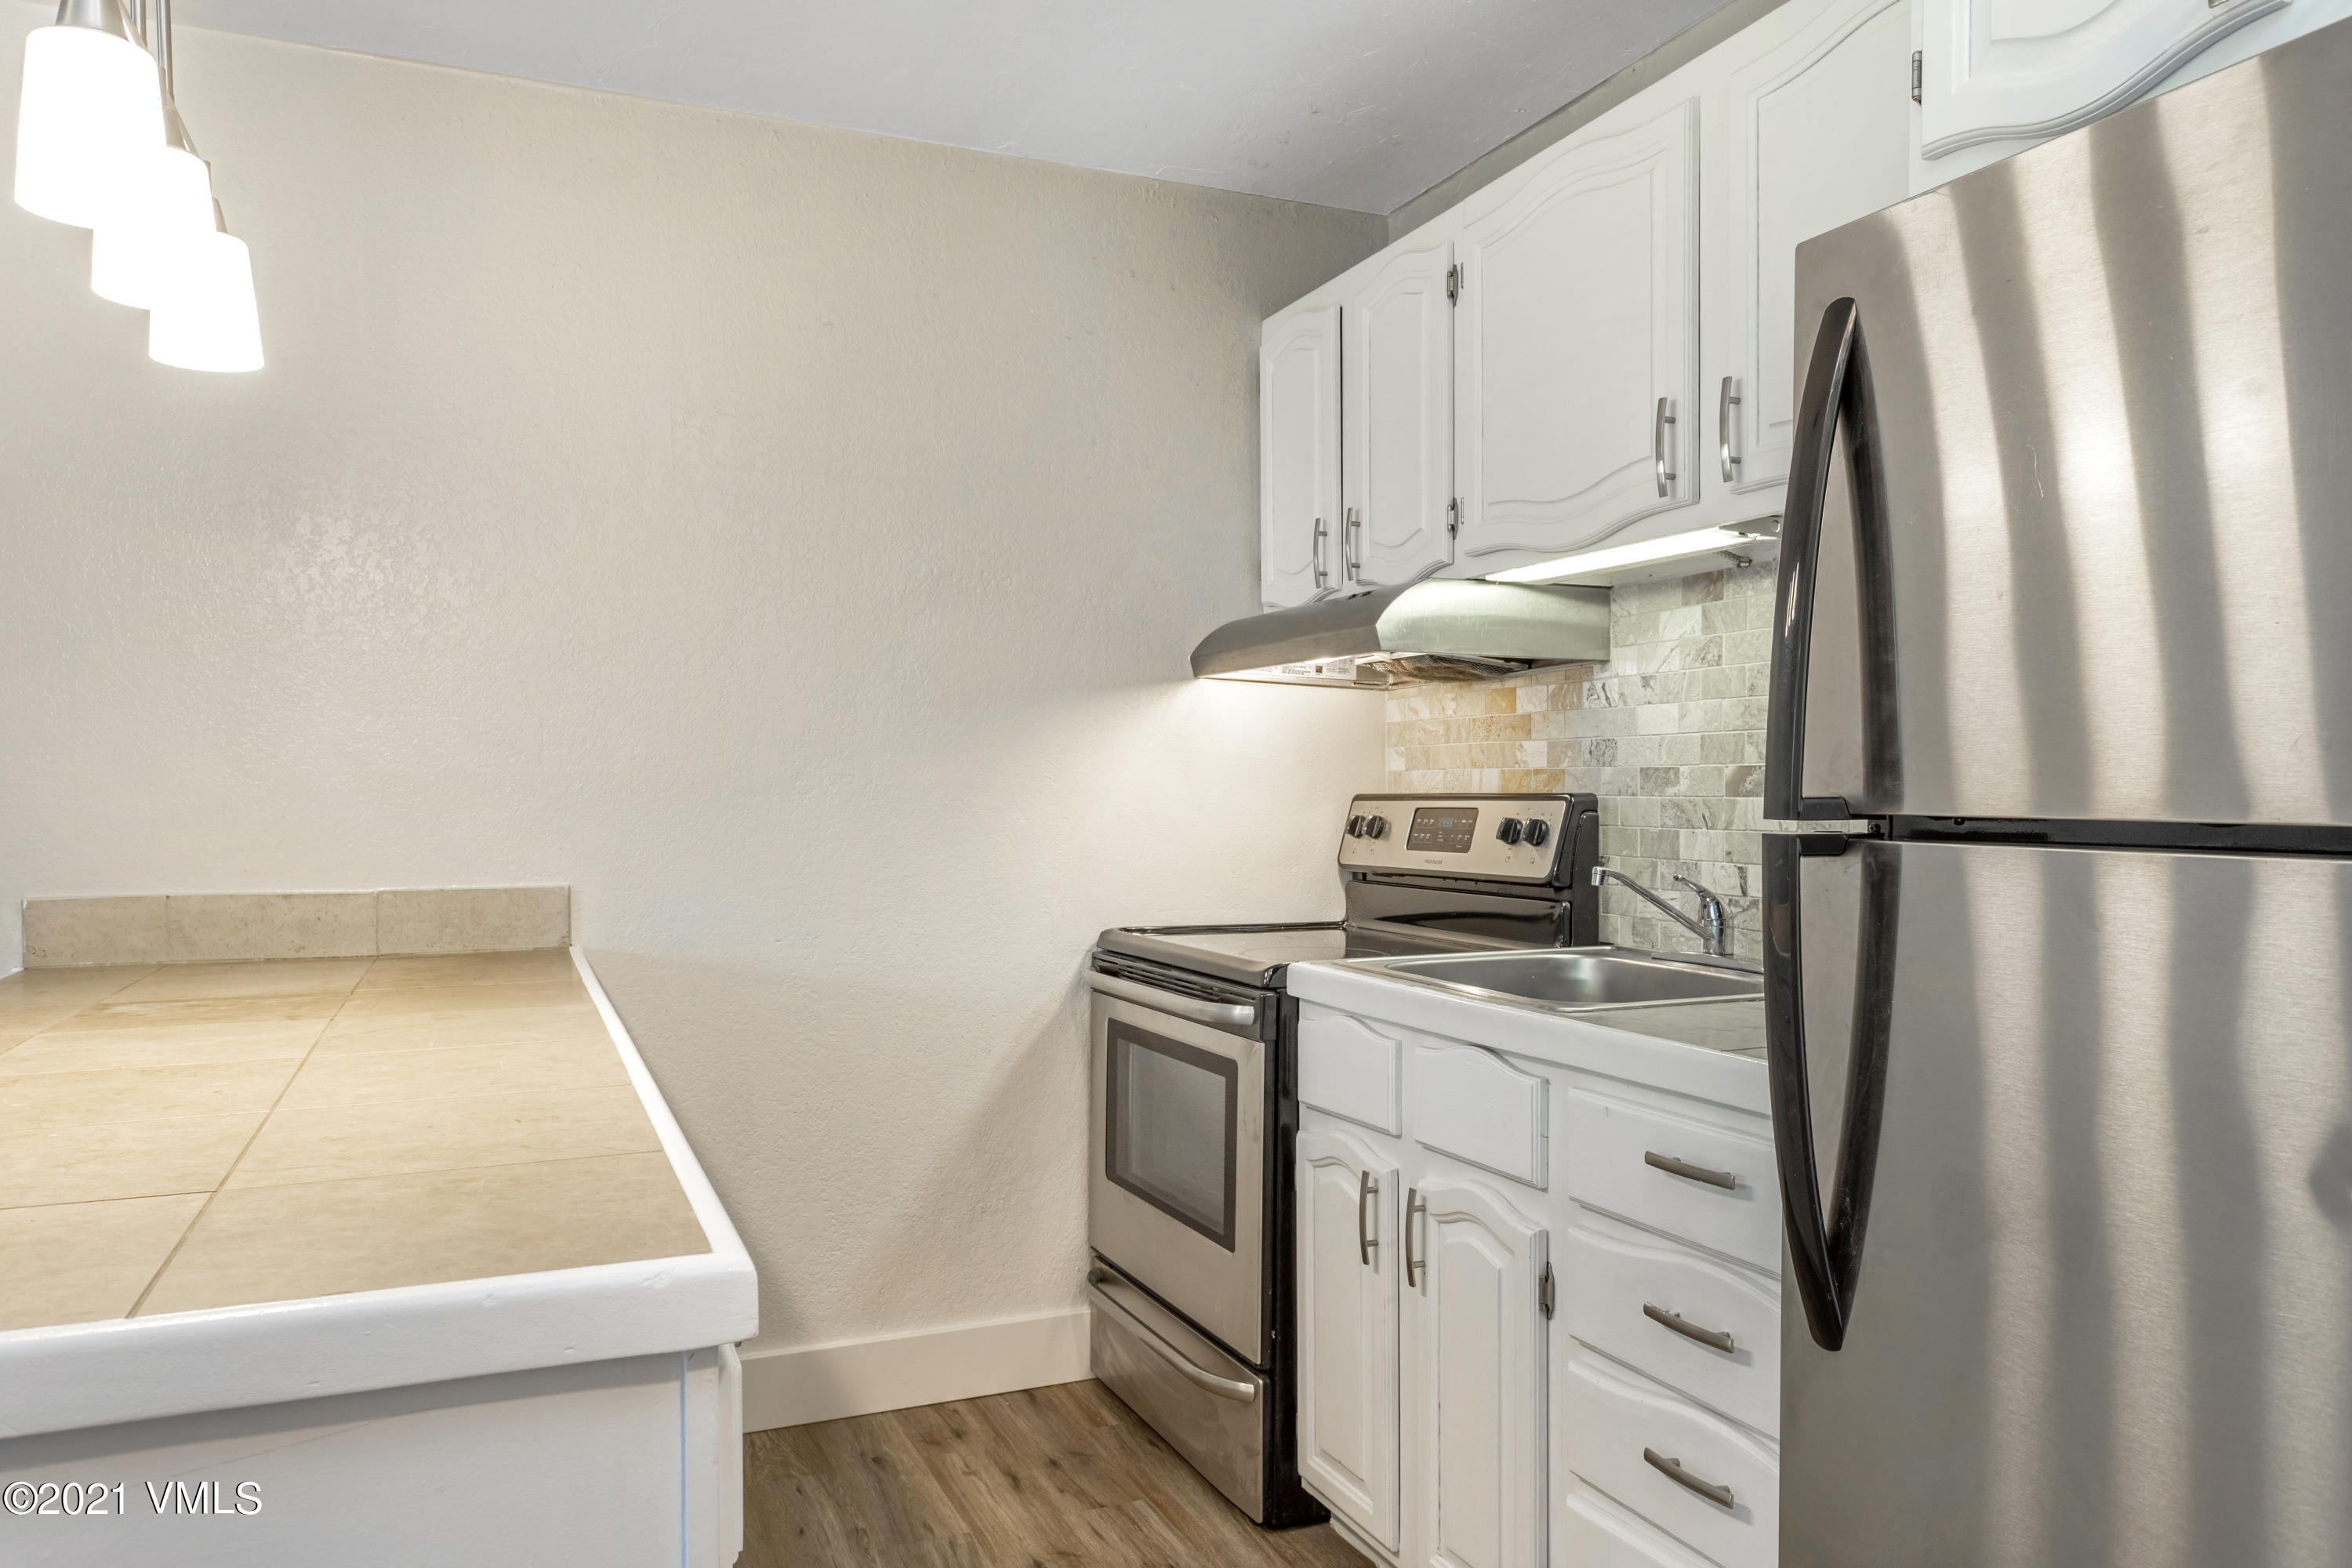 Recently renovated 1bed/1bath condominium located in the heart of Avon with direct and unobstructed views of Beaver Creek. This condo is centrally located and within walking distance to Nottingham Park, restaurants, and local schools. HOA dues include Water, Sewer, Trash, Cable TV, and Internet. Short term rentals are allowed. This unit comes with two assigned parking spots. Currently the most affordable unit on the market in Eagle County. This won't last long.